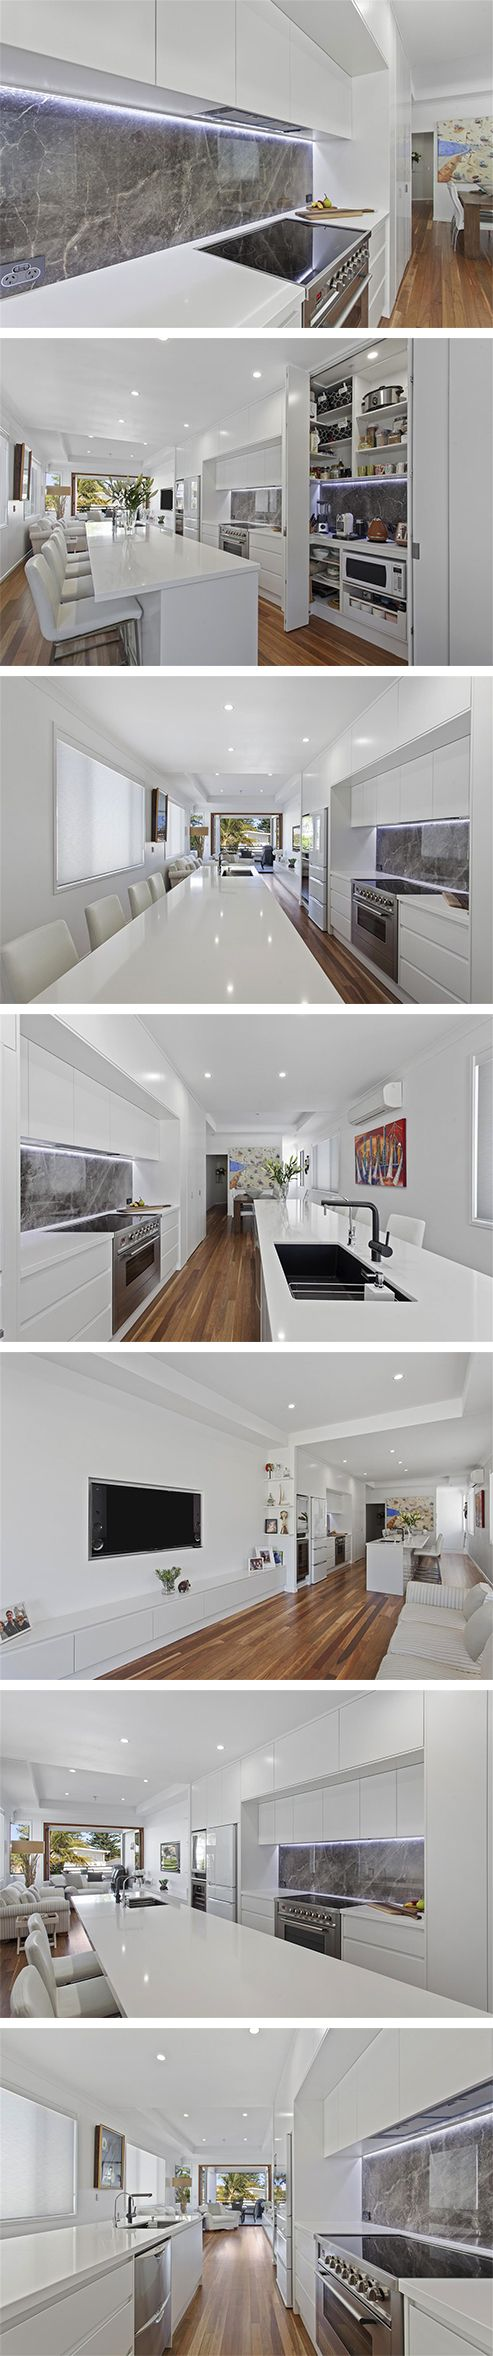 An award winning kitchen renovation by Smith & Sons Gold Coast Central. Simply STUNNING. <3